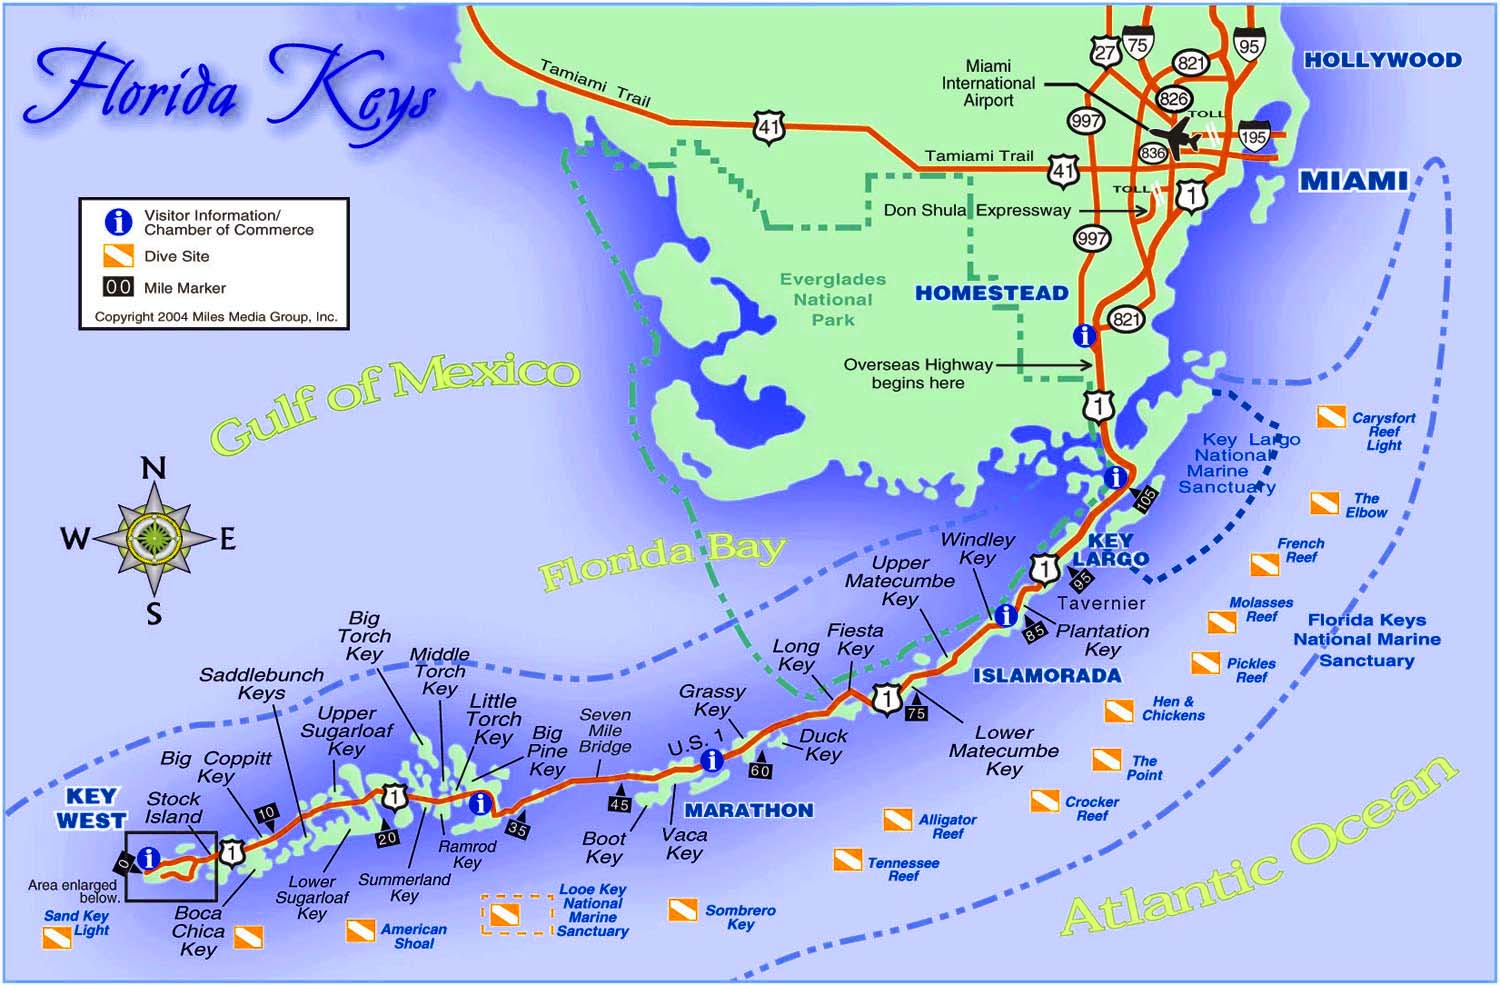 Map Of Florida Keys Beaches.Best Florida Keys Beaches Map And Information Florida Keys